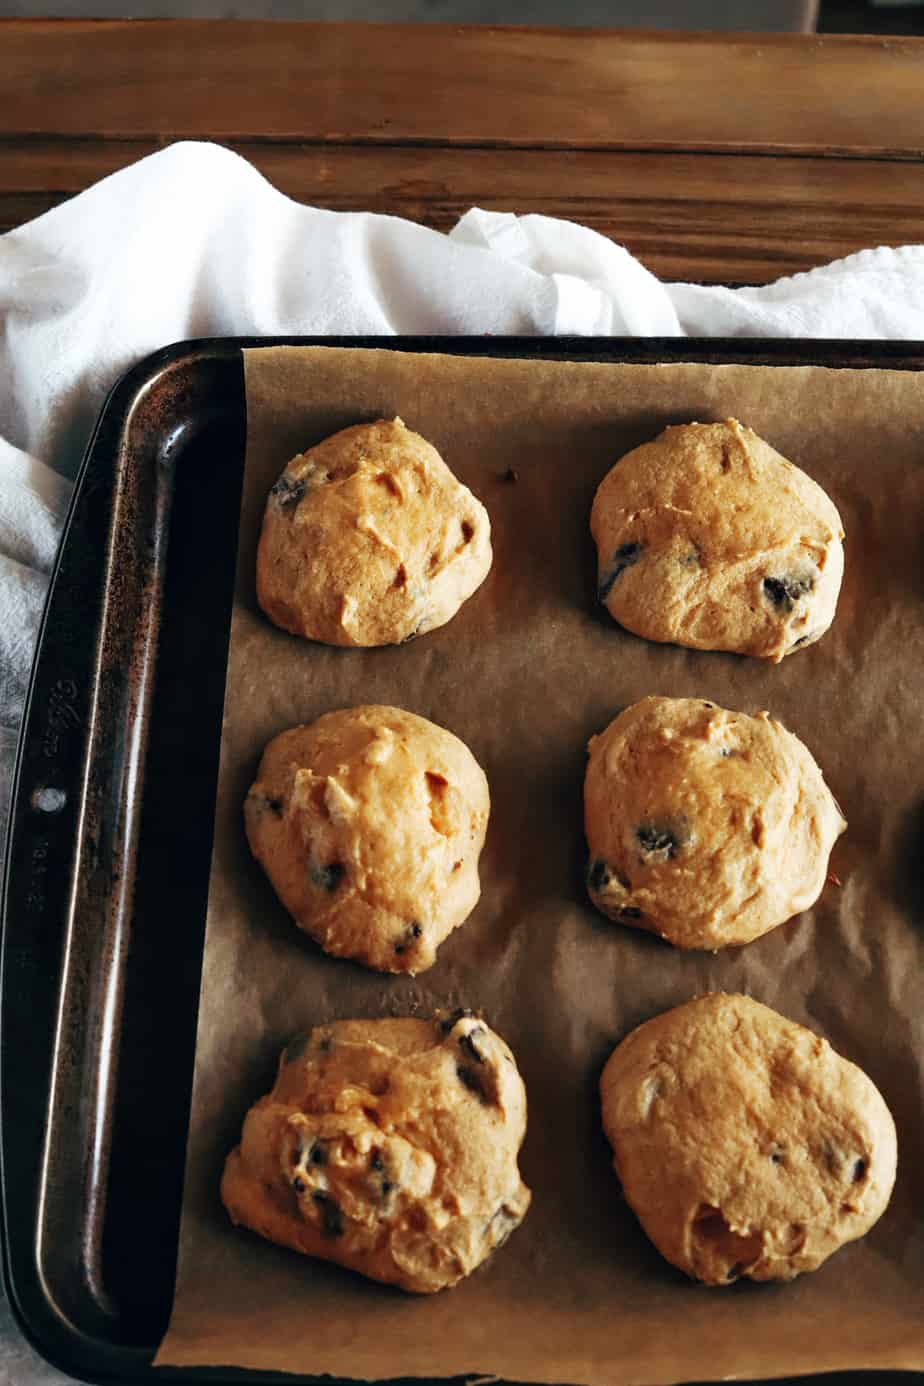 Freshly baked pumpkin muffin cookies are cooling on a baking sheet atop a white folded tea towel